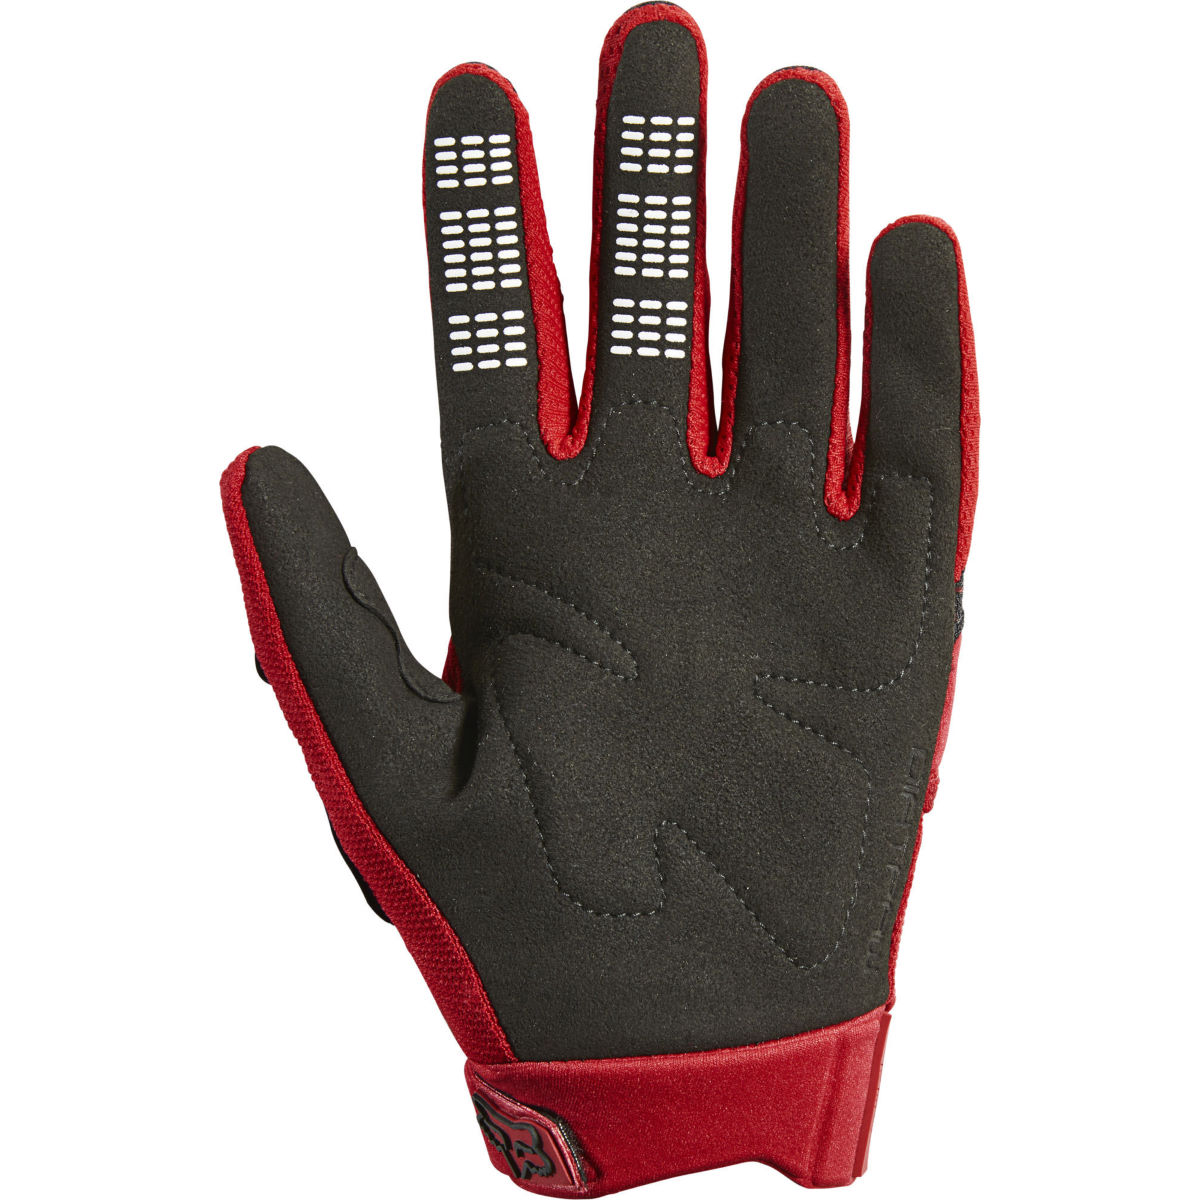 Fox Racing Youth Dirtpaw Race Cycling Gloves - Y-m Flame Red  Gloves